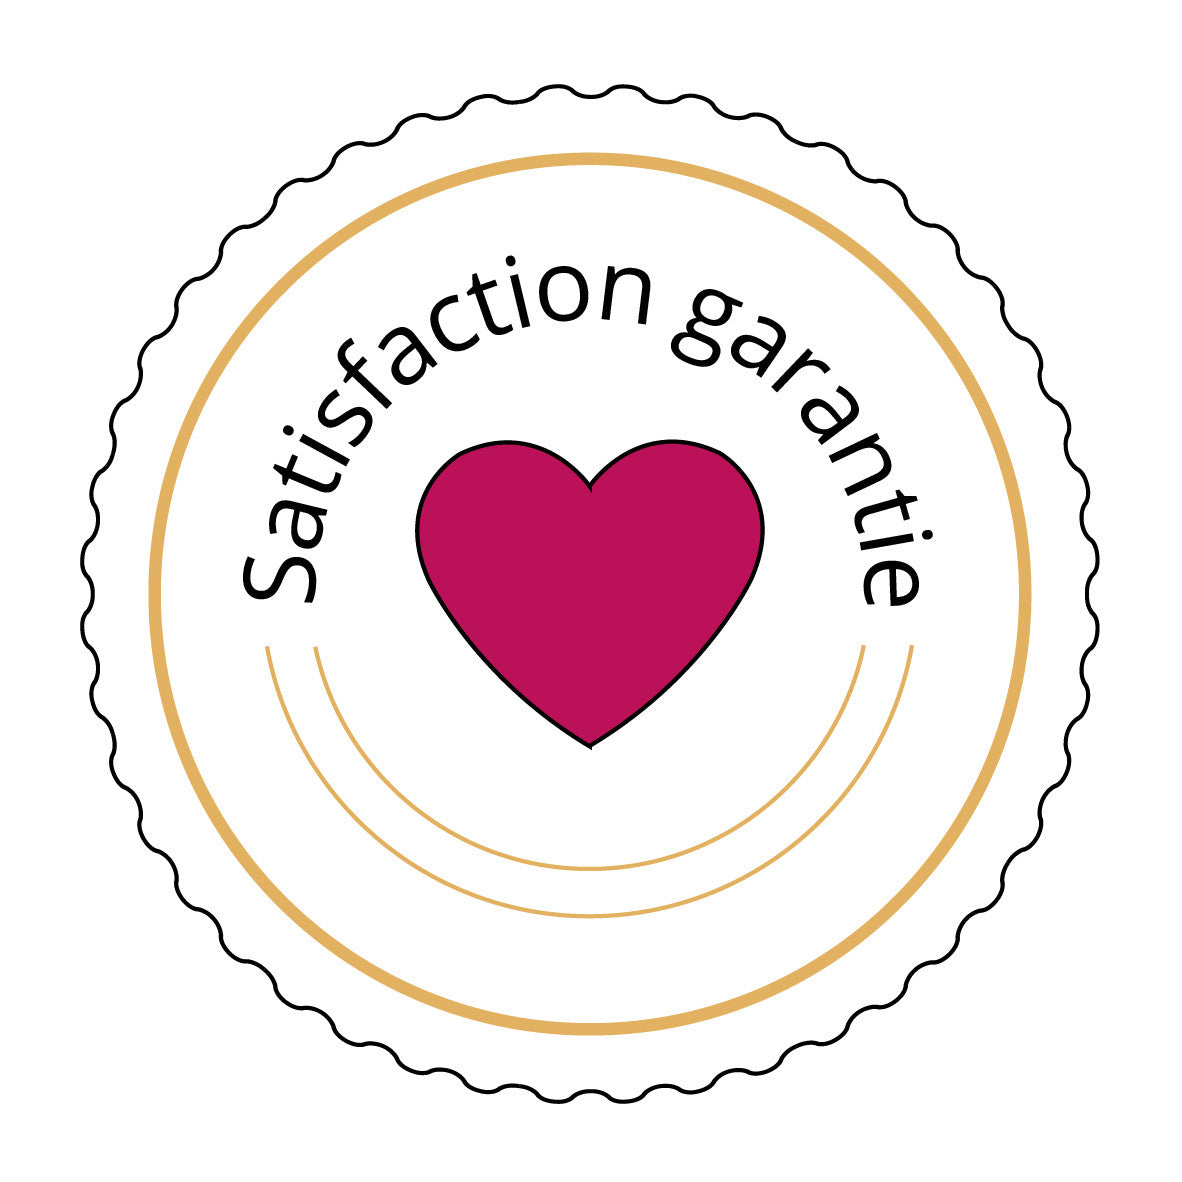 Votre satisfaction est garantie - mode durable